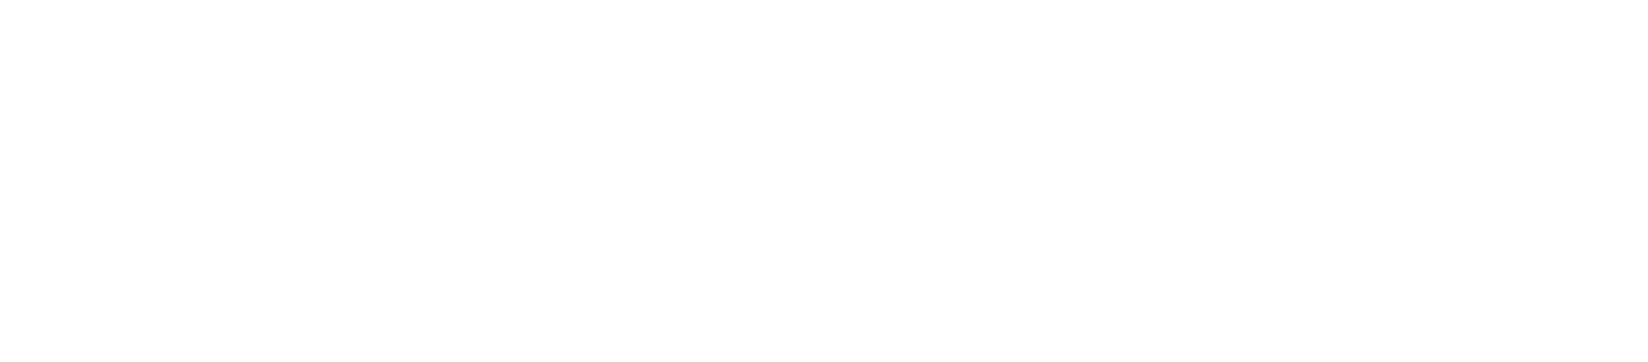 Financial Building Blocks